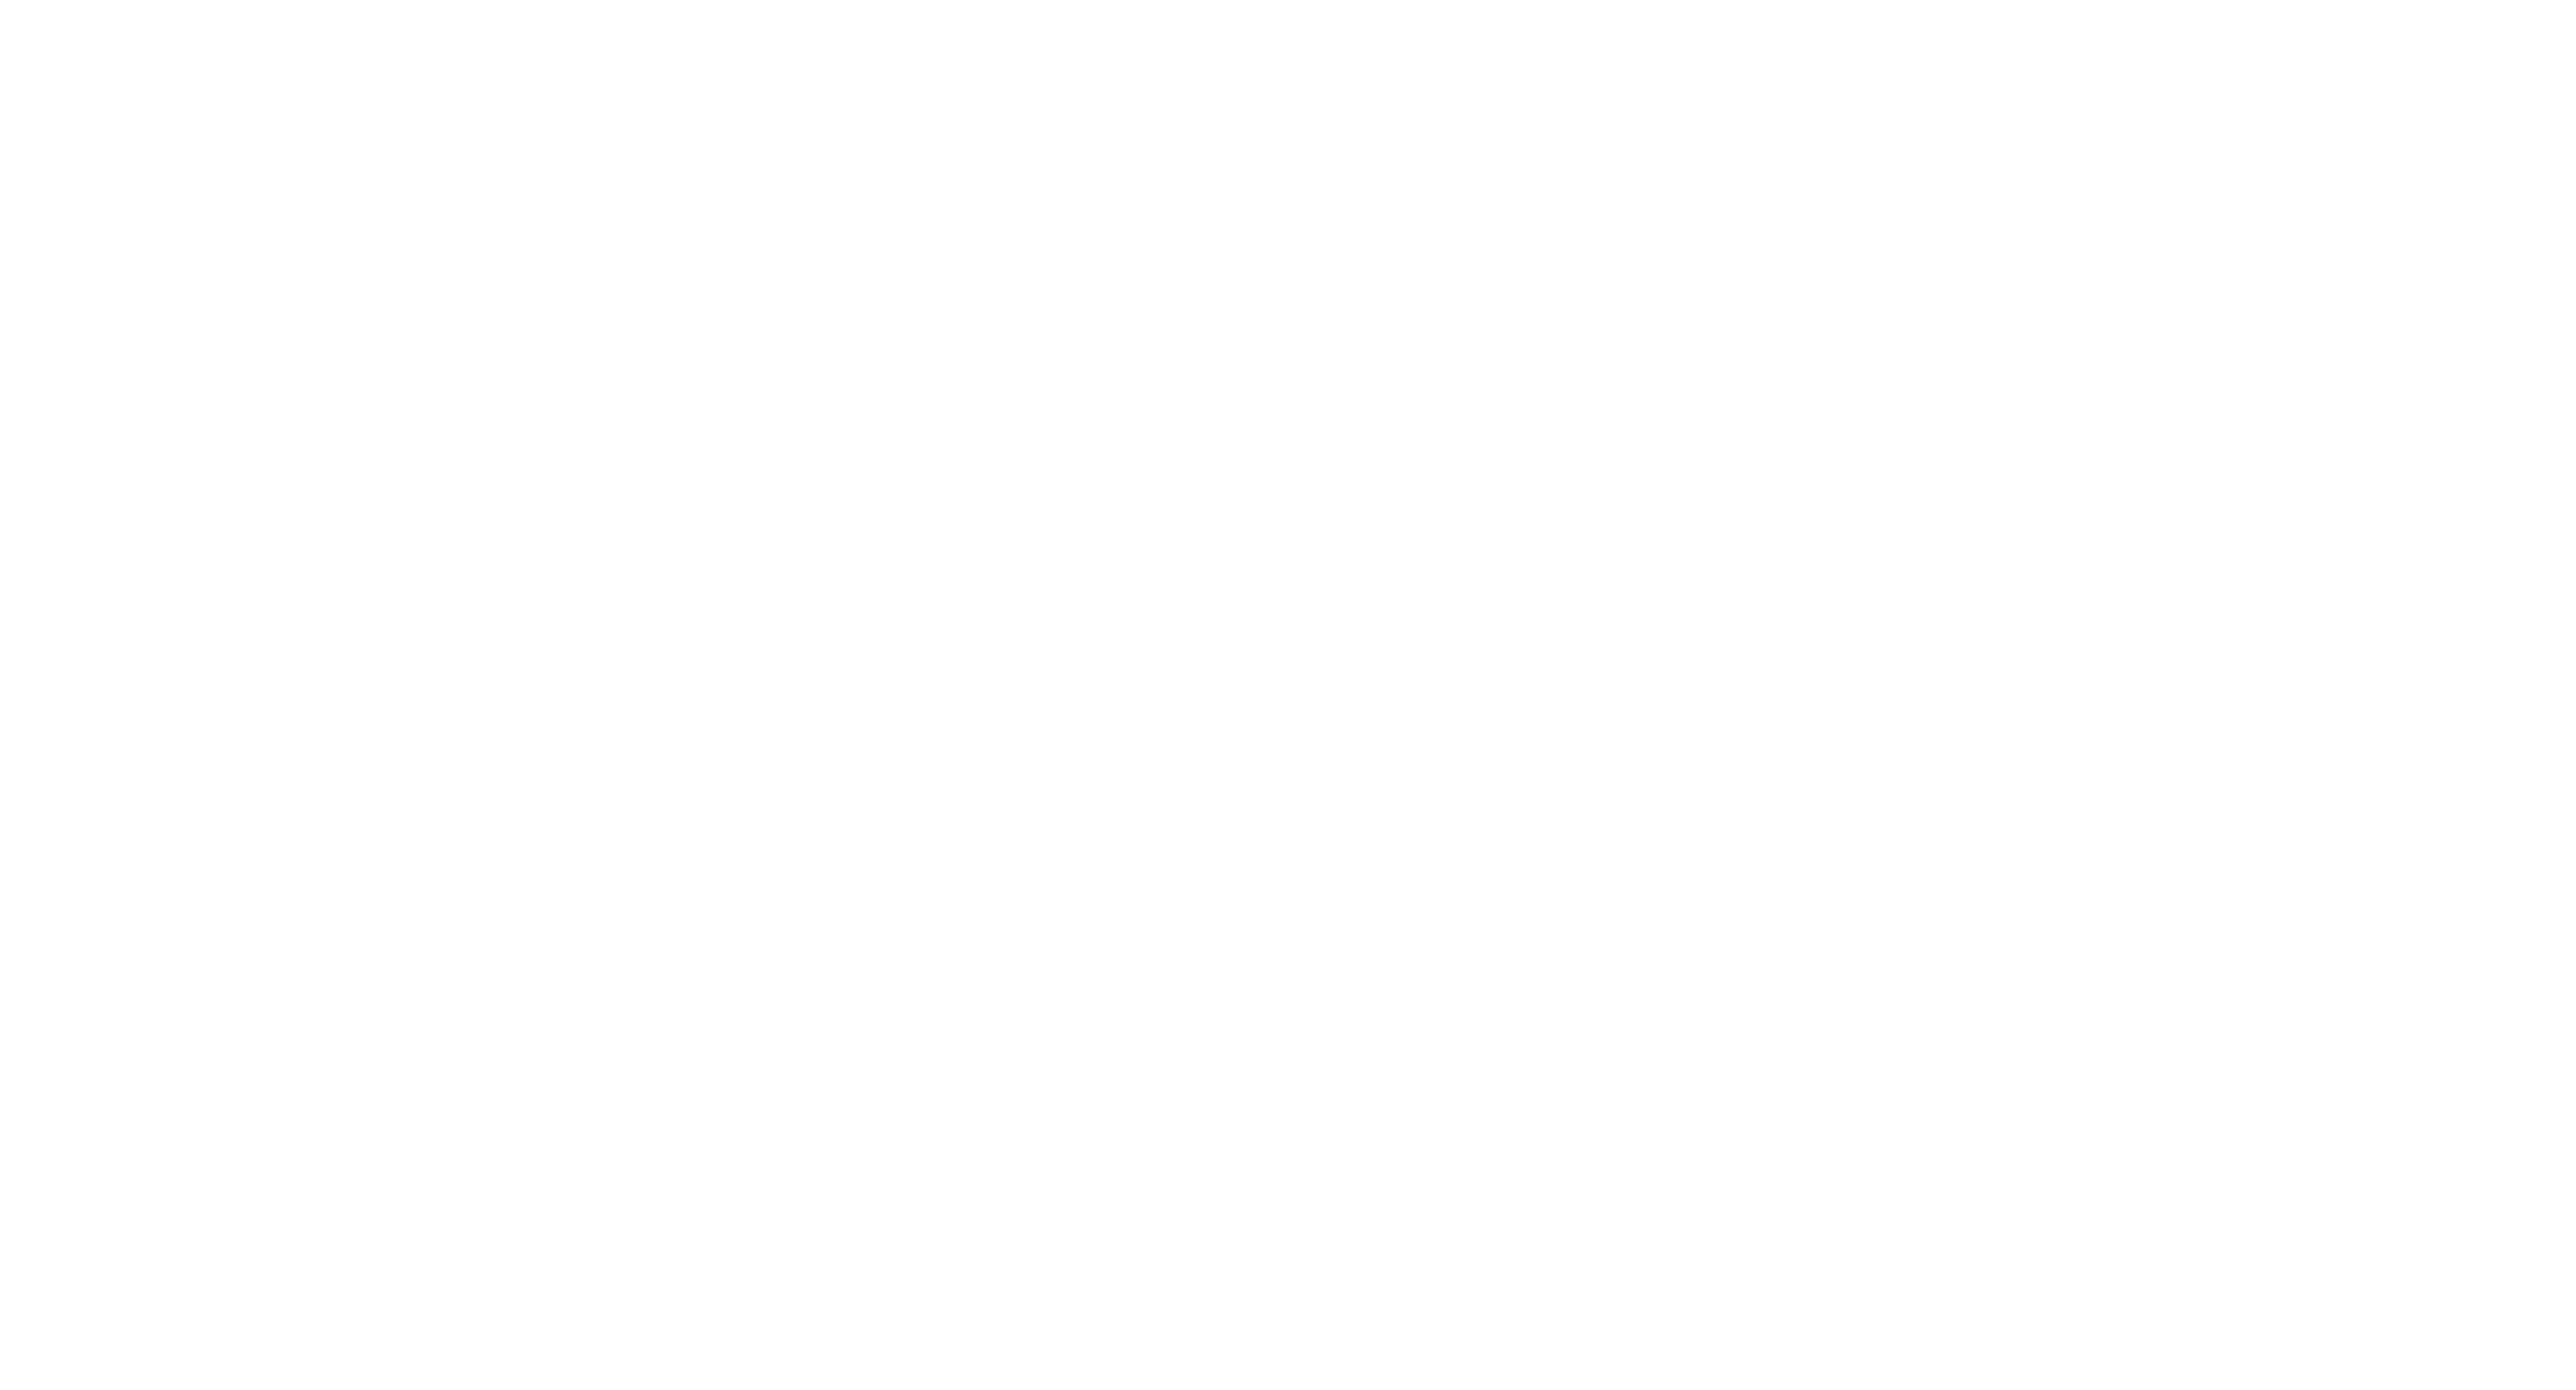 Yorkshire and the Humber Liberal Democrats